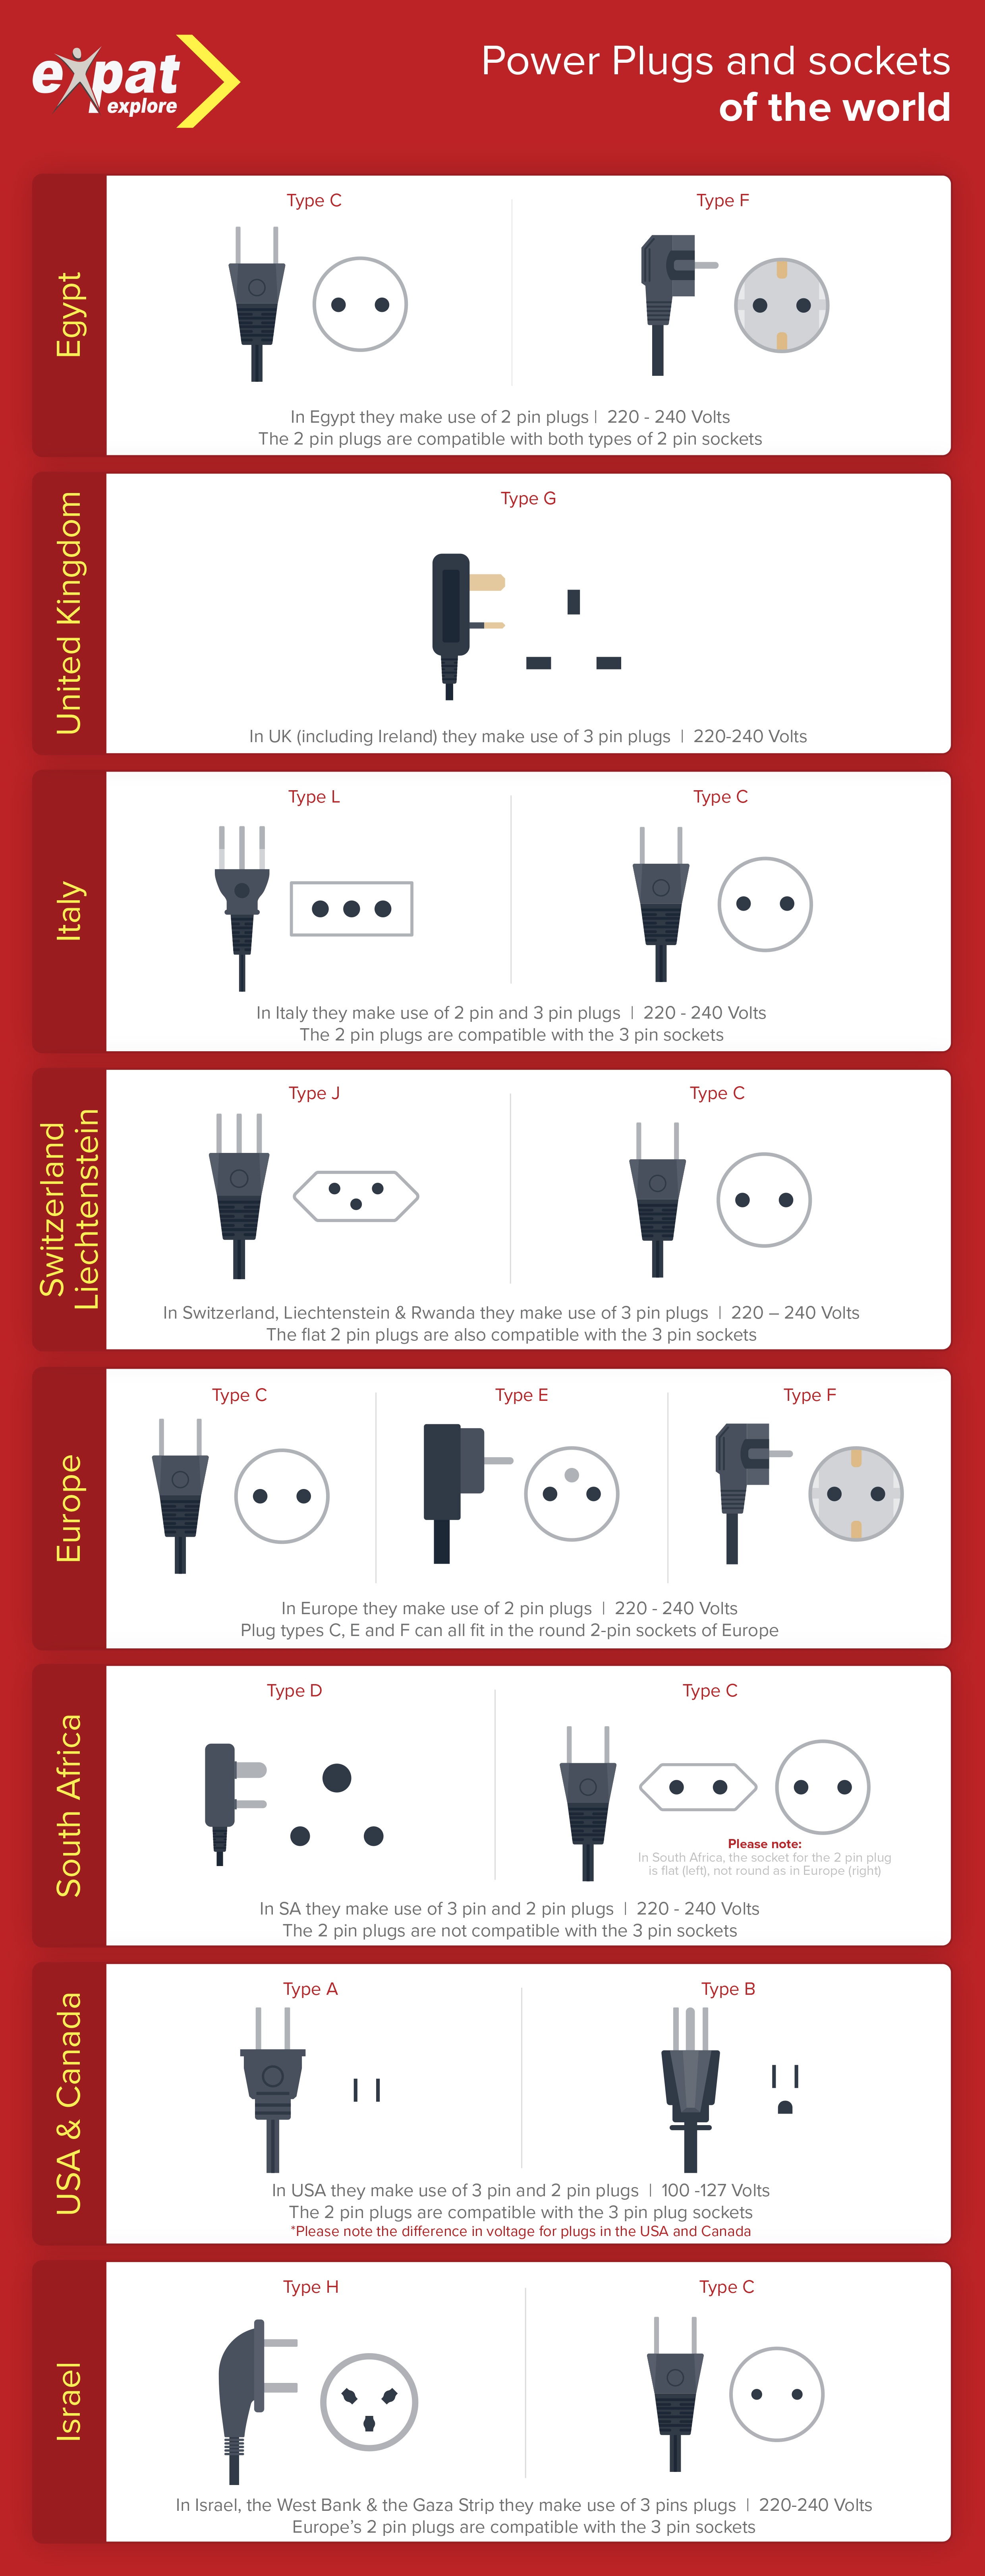 Electricity travel guide plugs outlets voltage expat explore electricity travel guide plugs outlets voltage by country publicscrutiny Gallery